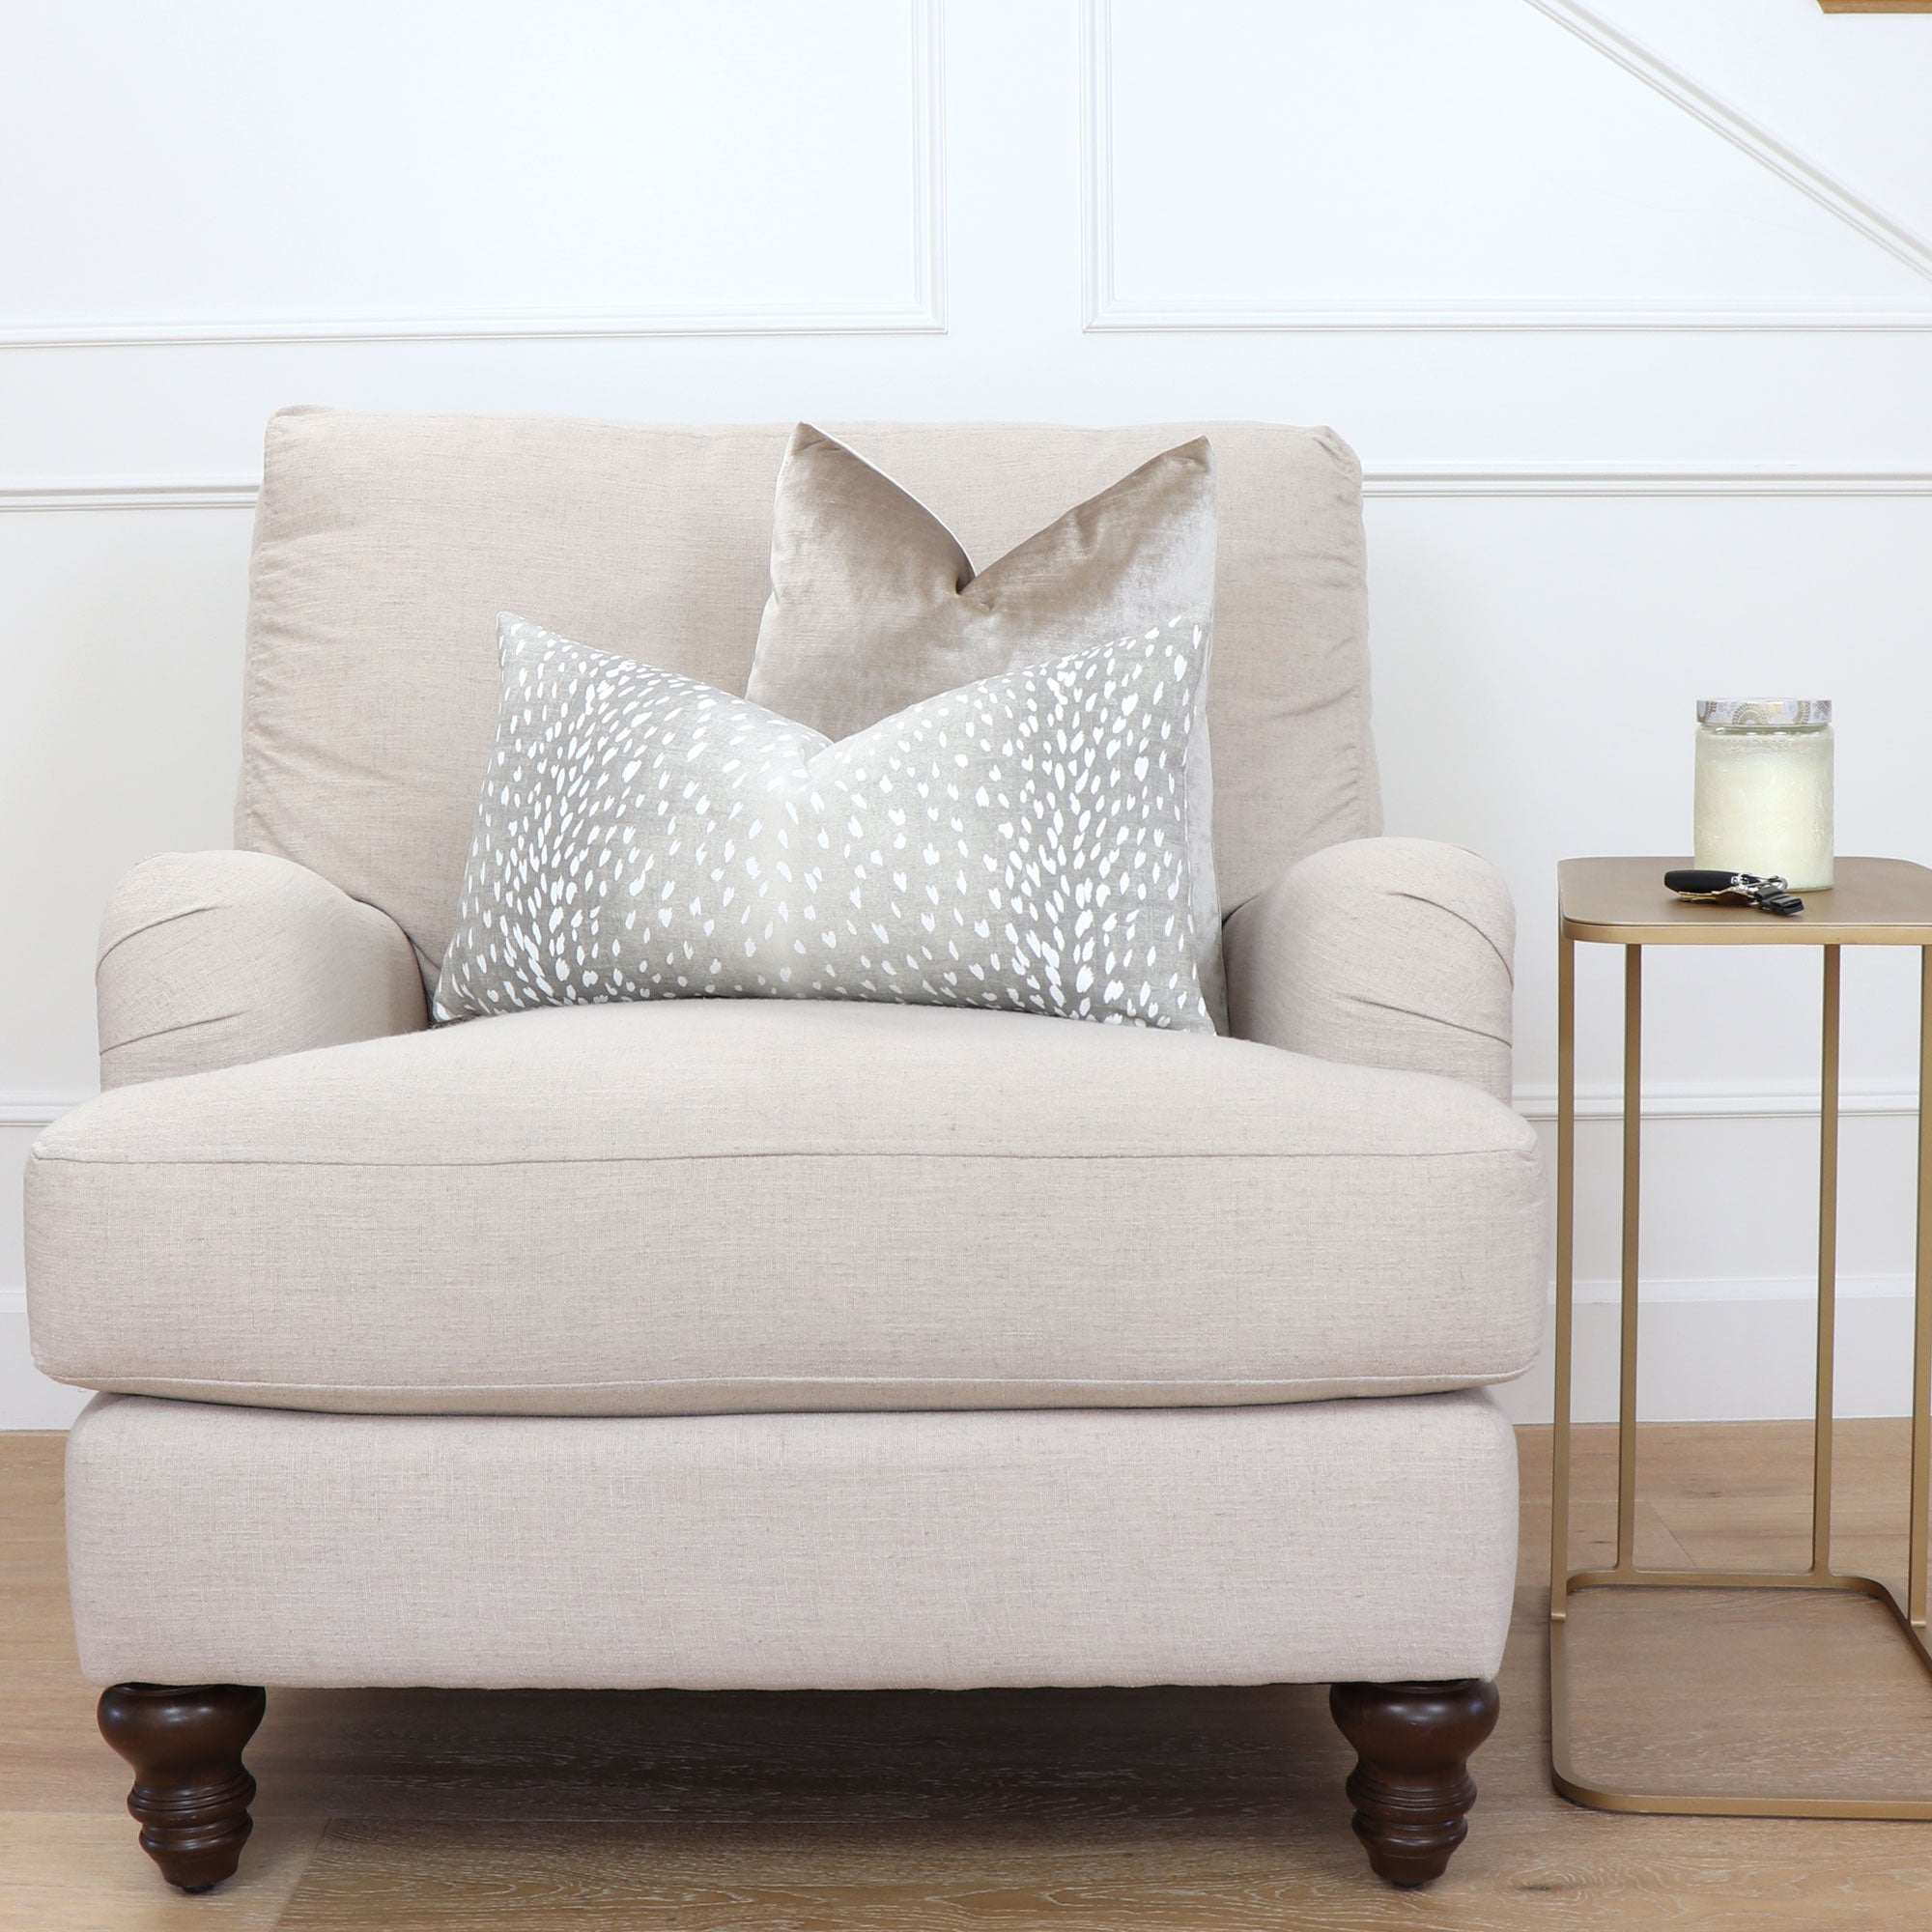 Awesome Chloe And Olive Pillow Shop Designer Antelope Fawn Linen Andrewgaddart Wooden Chair Designs For Living Room Andrewgaddartcom